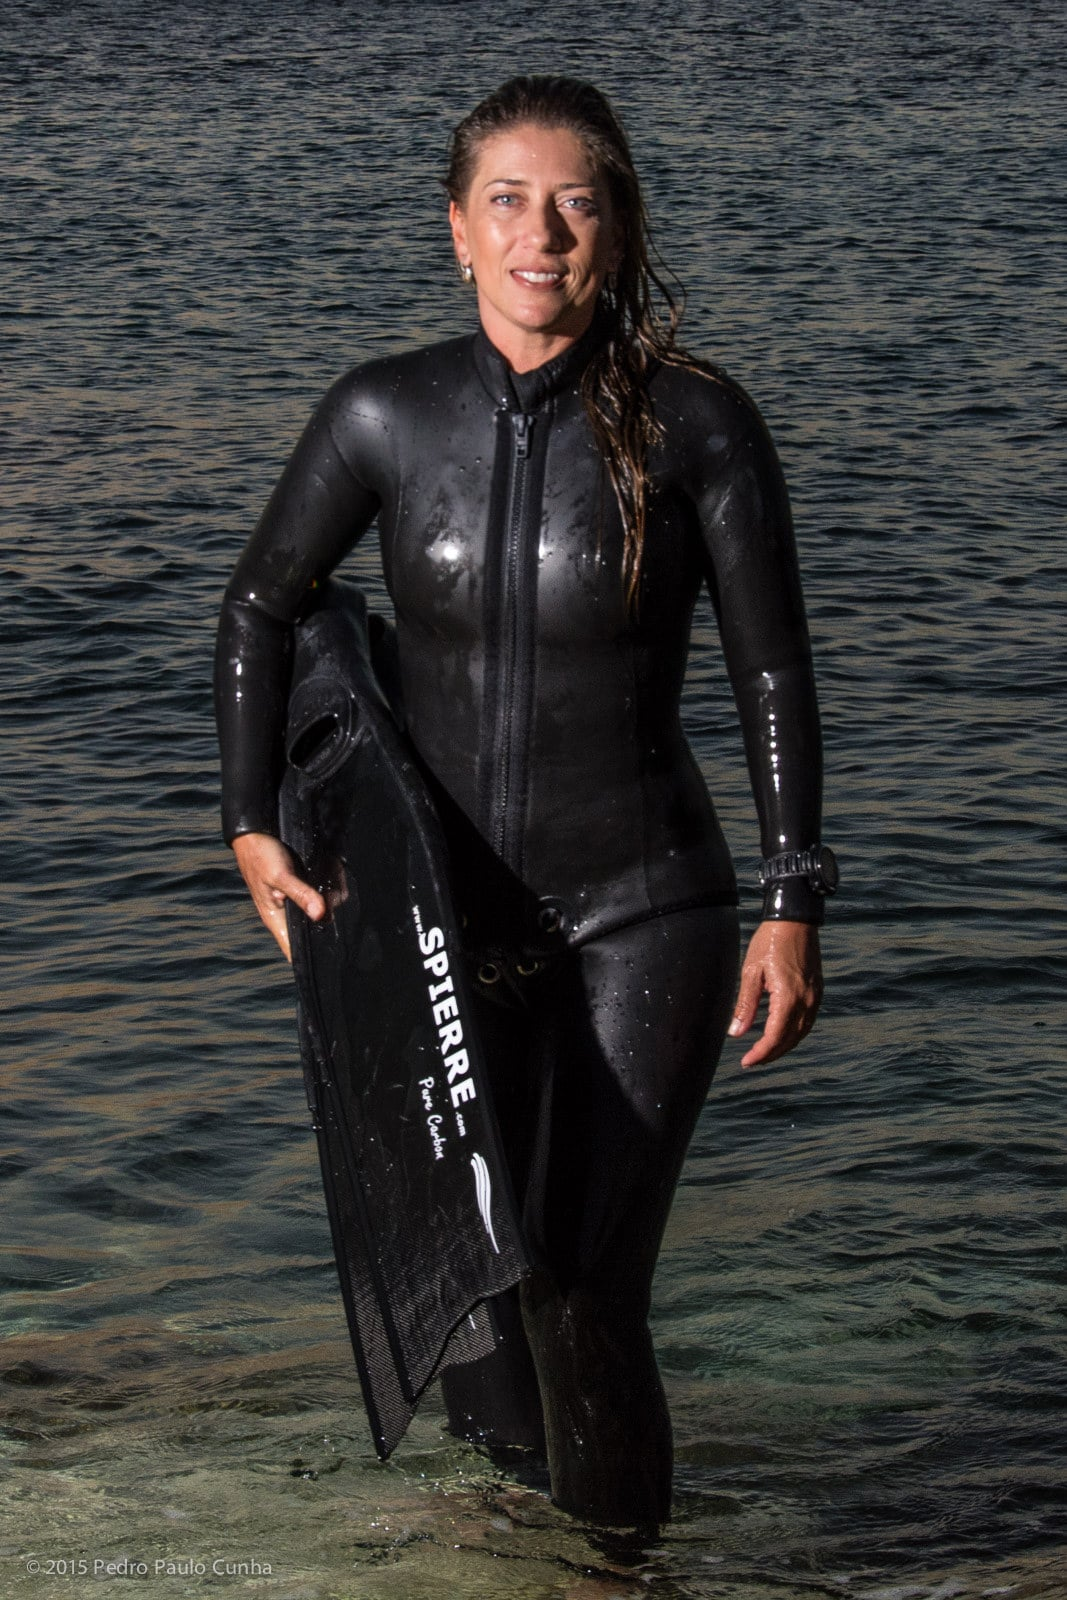 wetsuit Jumpsuit Photograph by Pedro Paulo Cunha